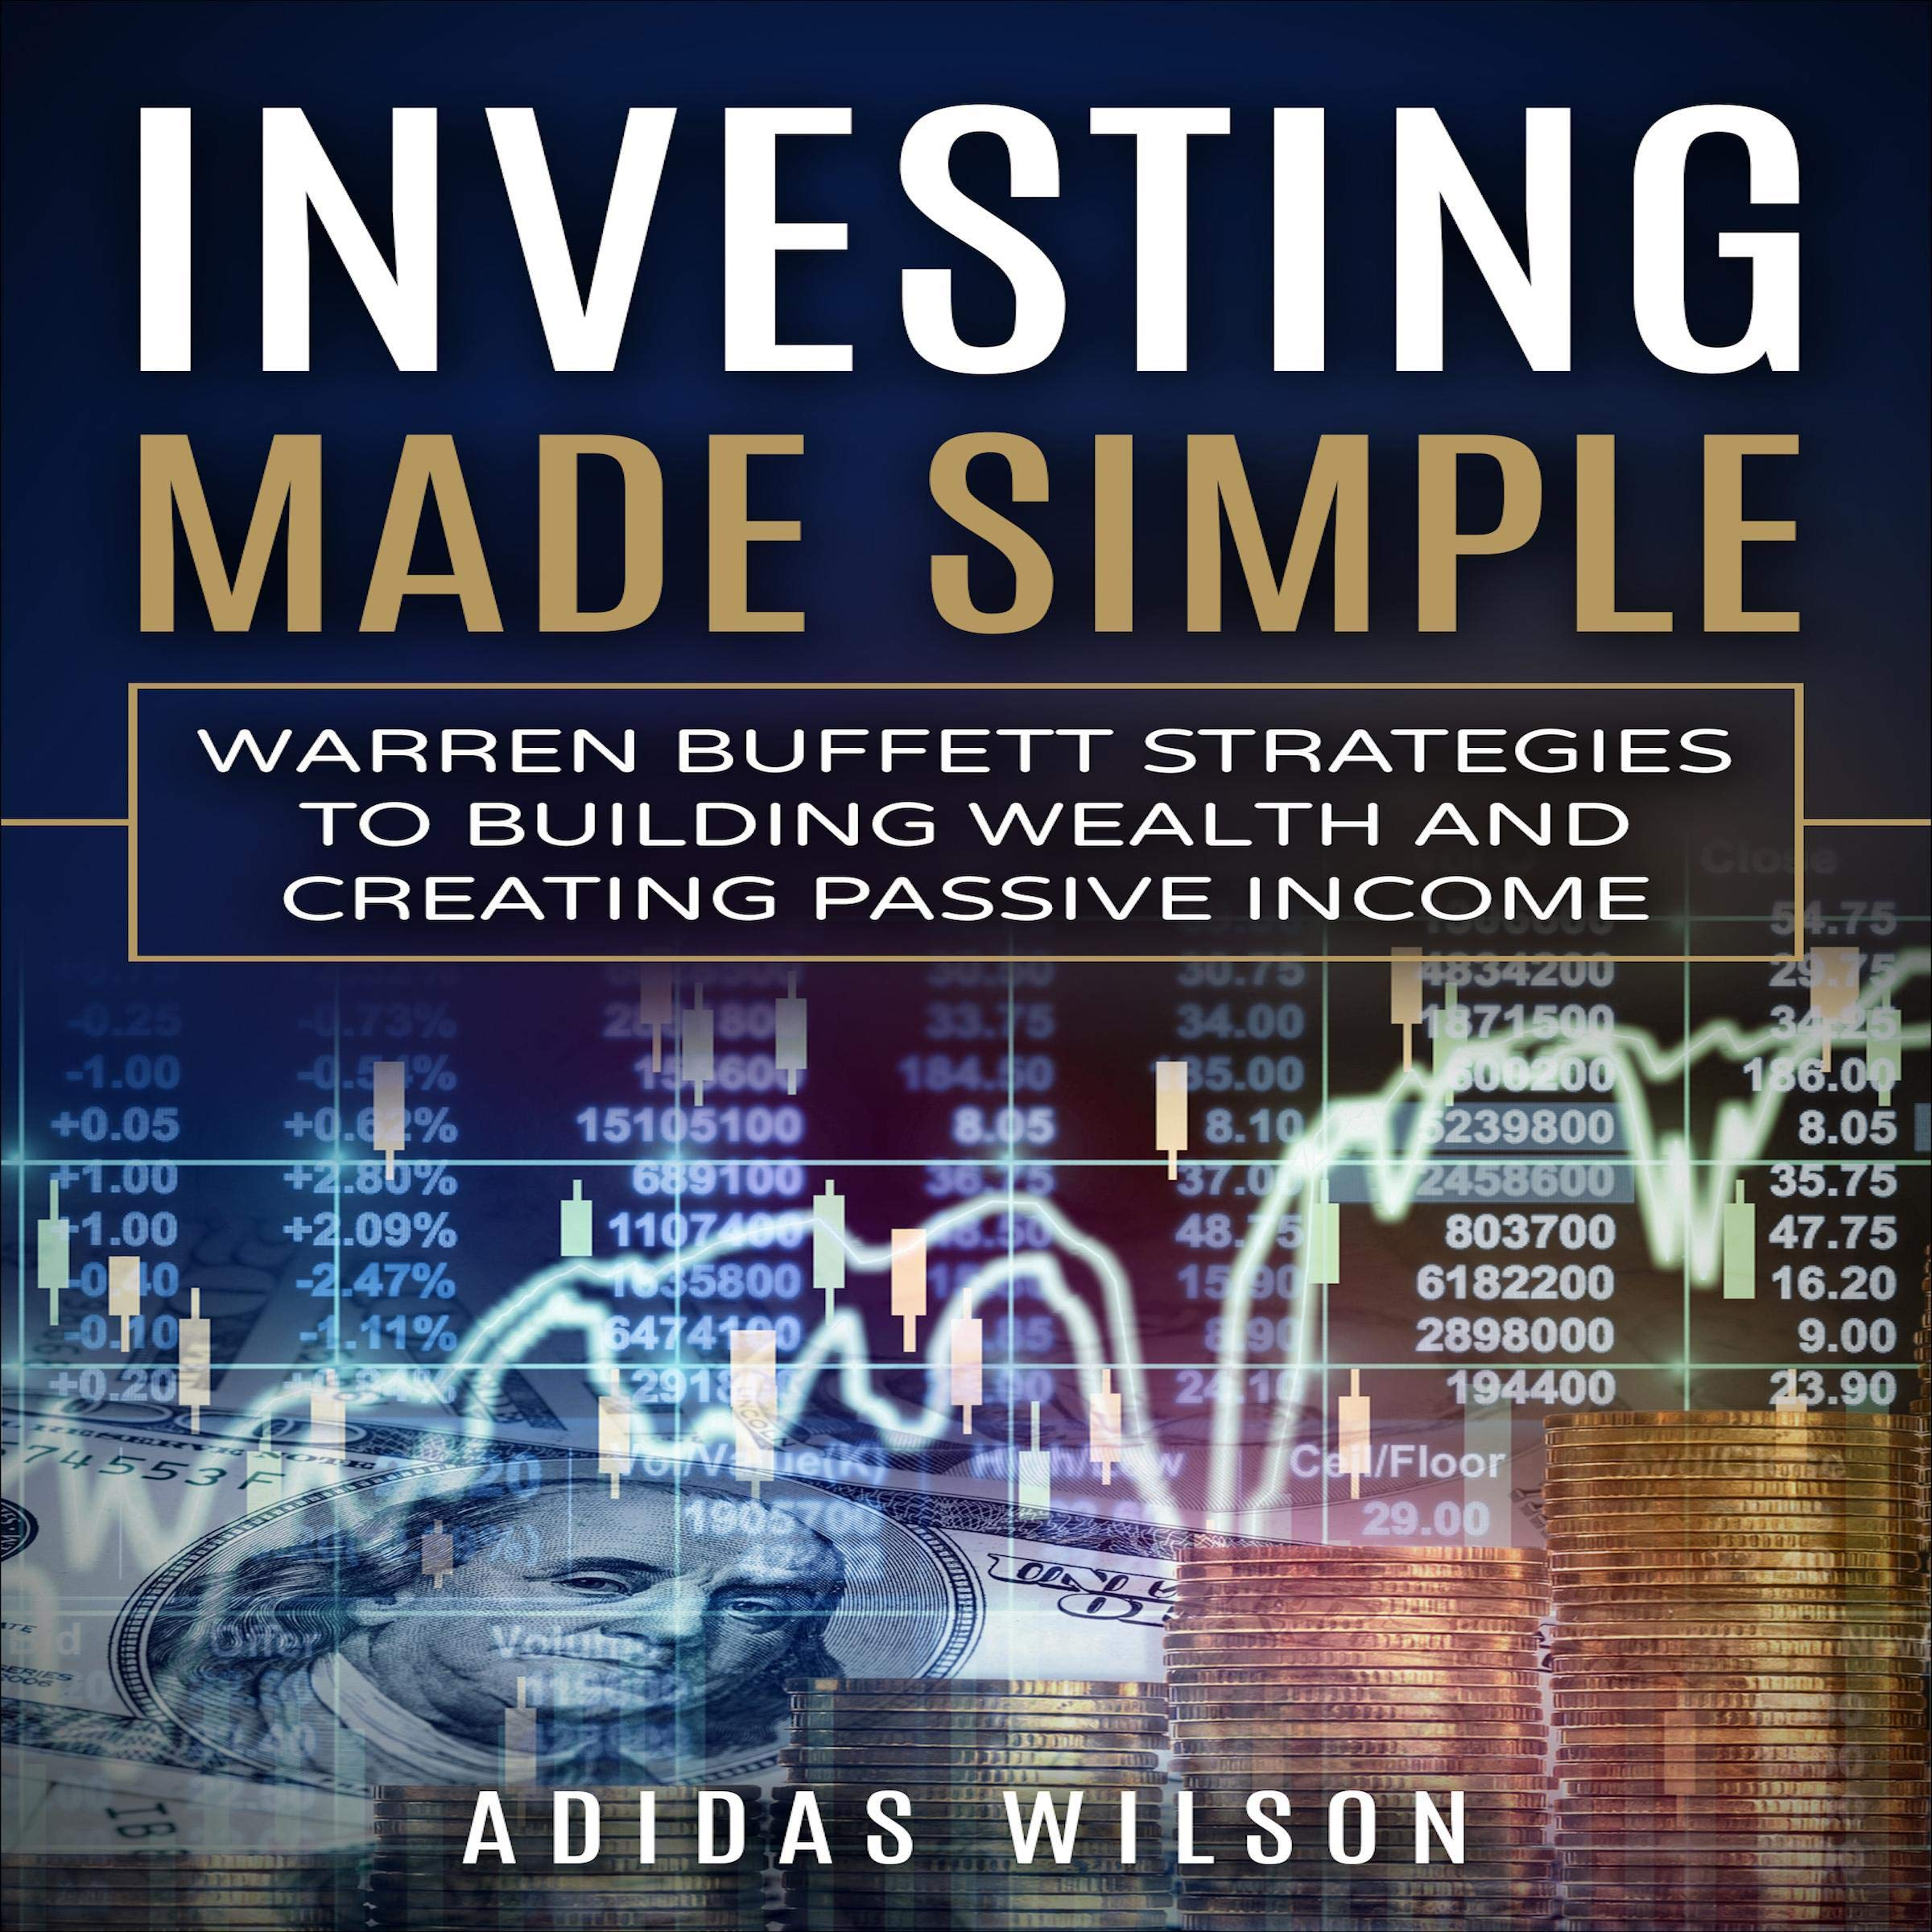 Investing Made Simple  Warren Buffet Strategies To Building Wealth And Creating Passive Income